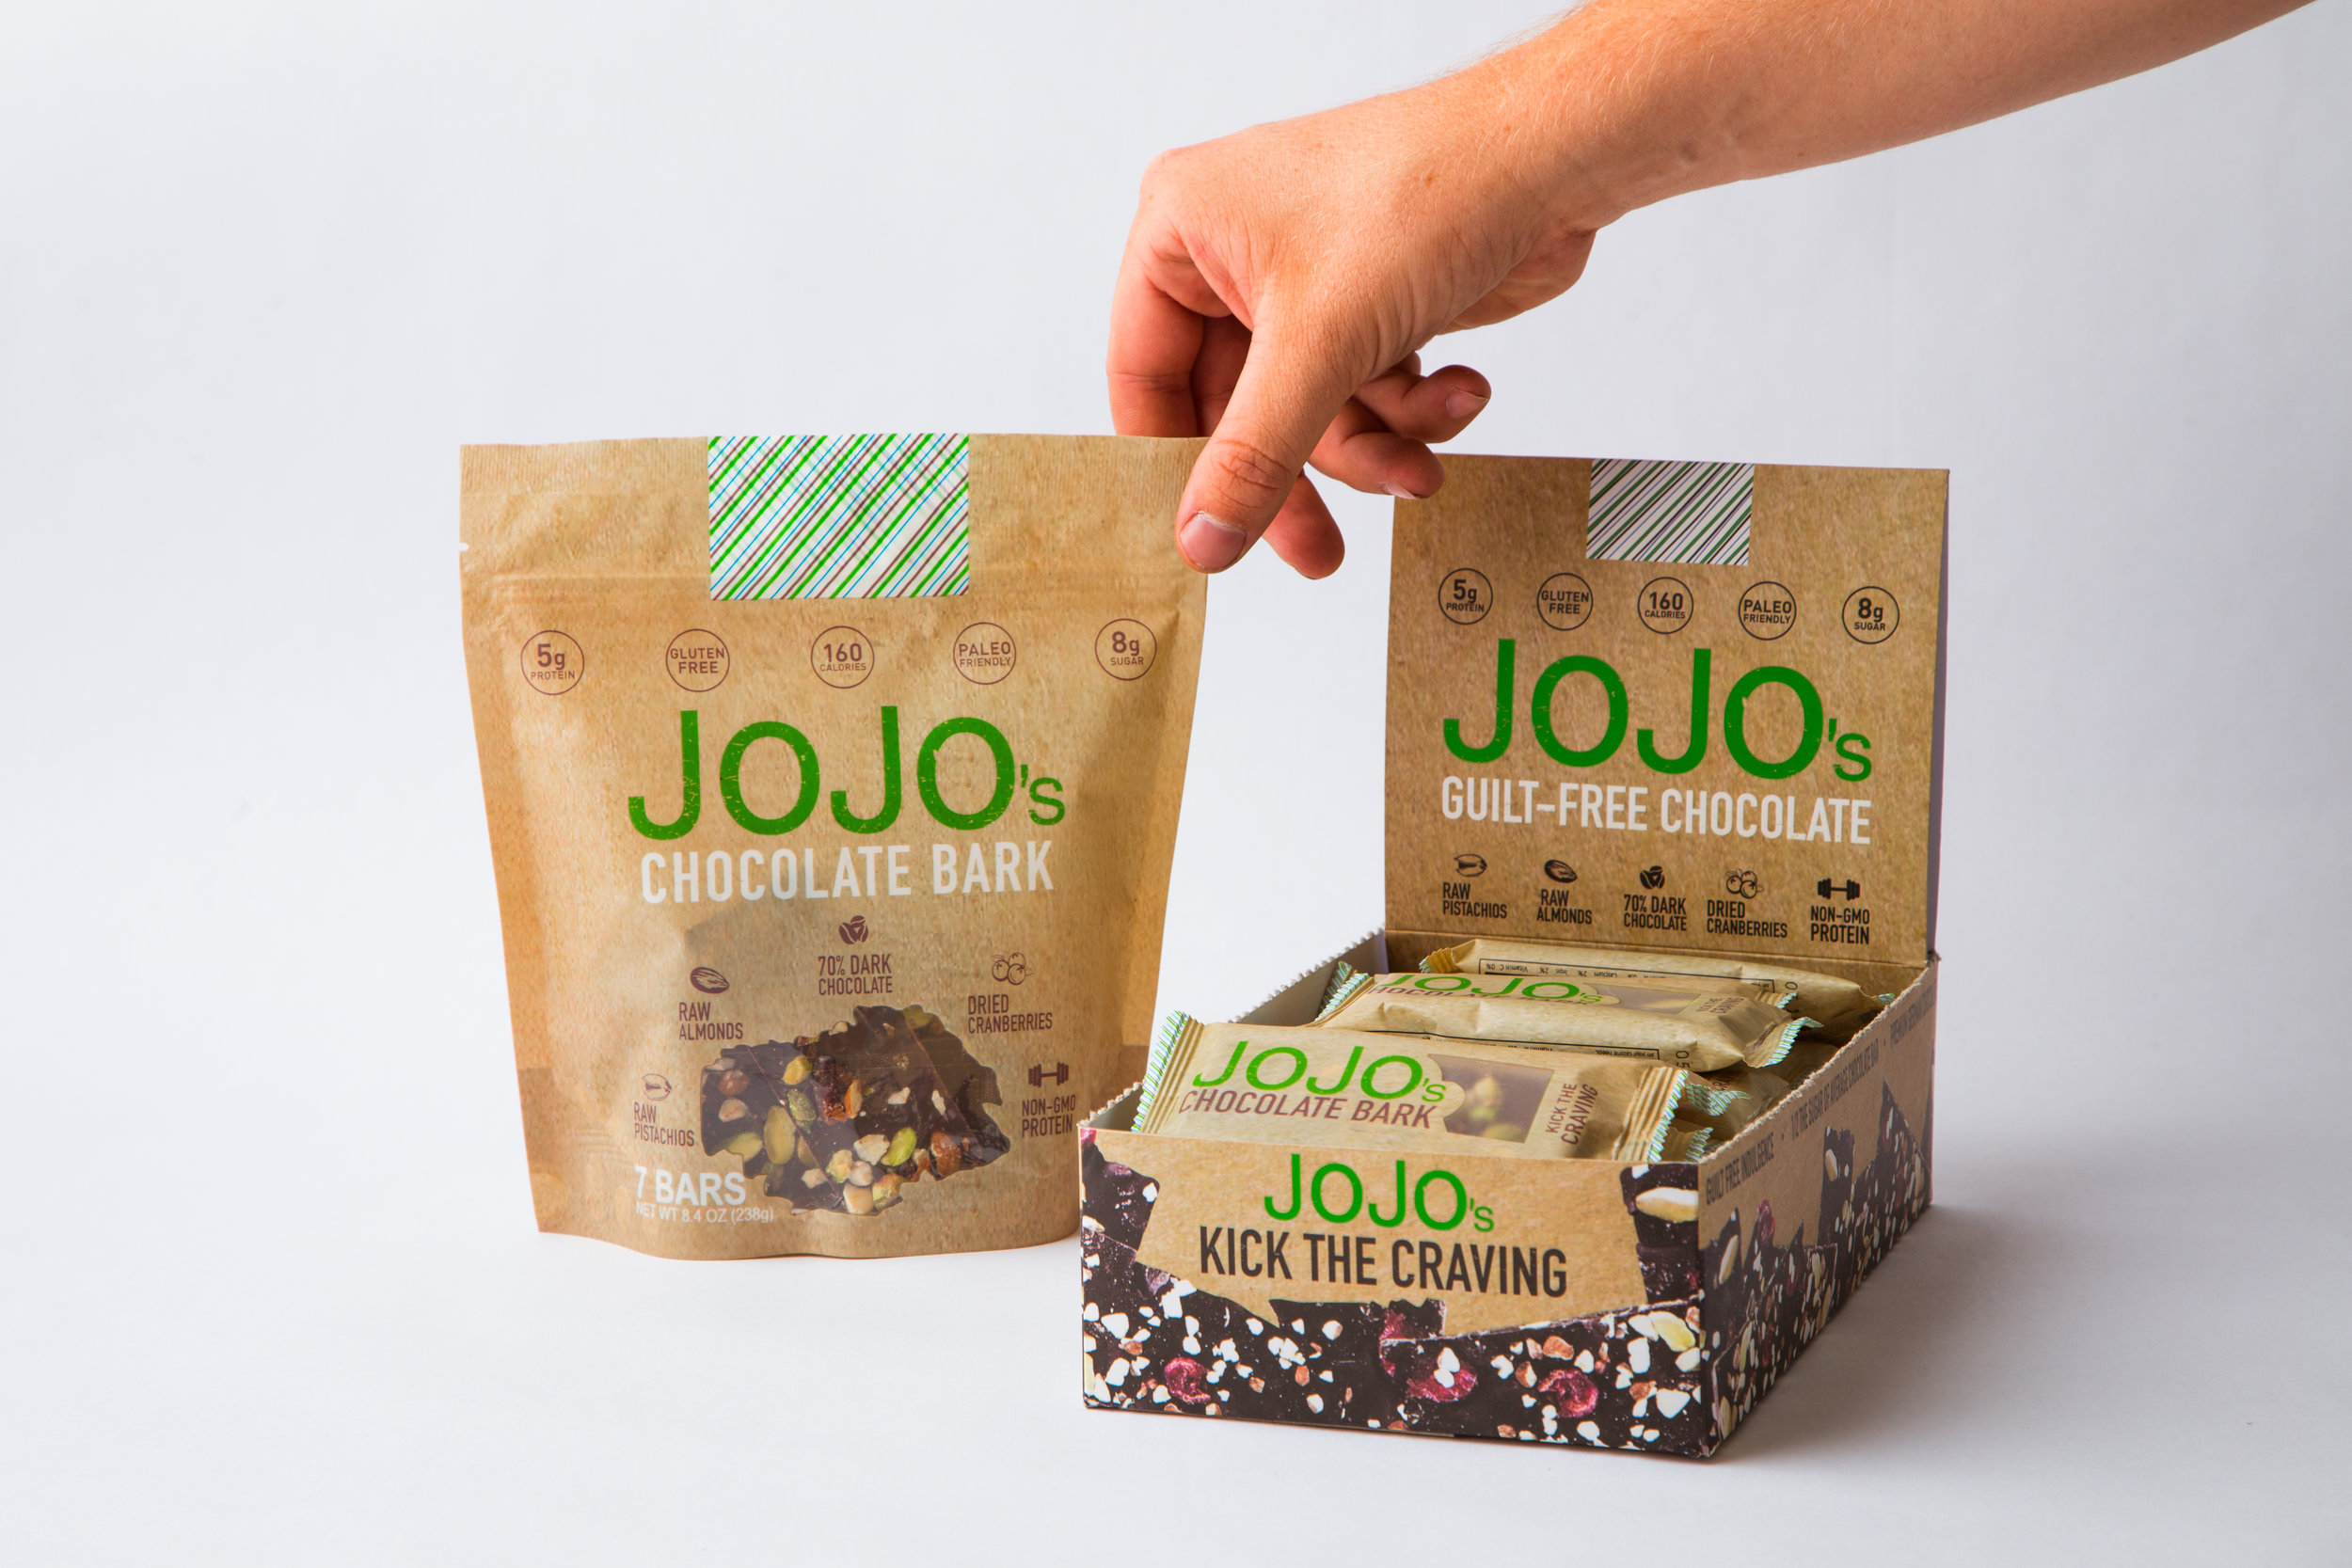 Jojos Chocolate-078.jpg